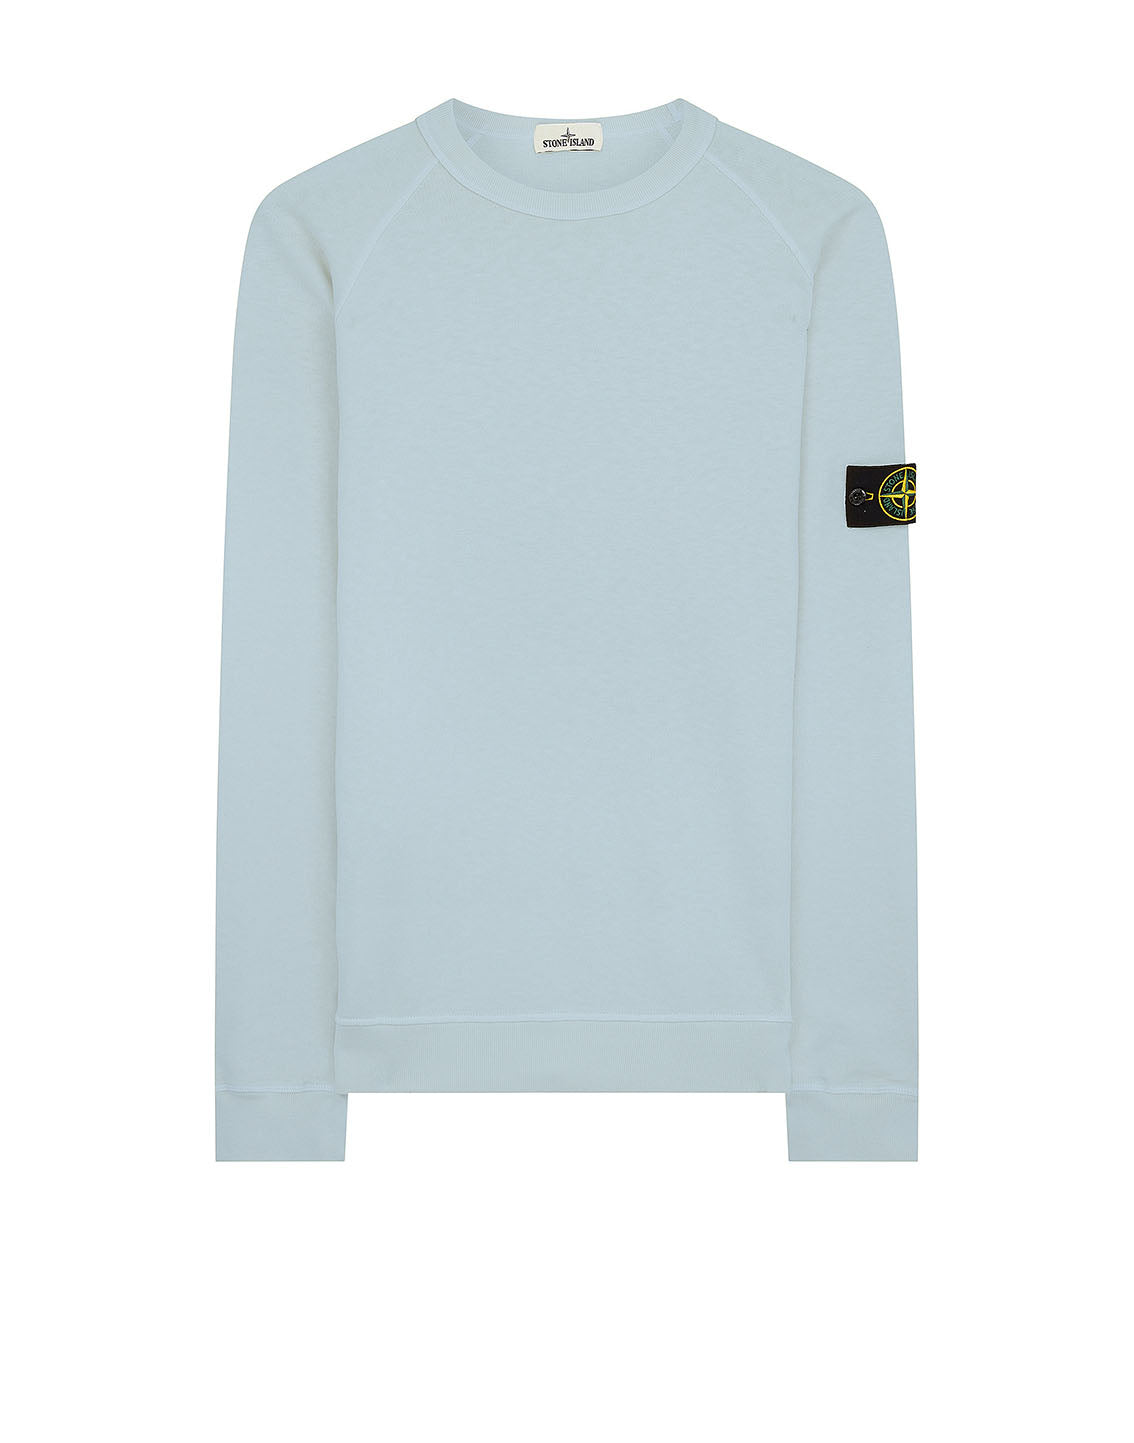 66060 T.CO+OLD Sweatshirt in Sky Blue